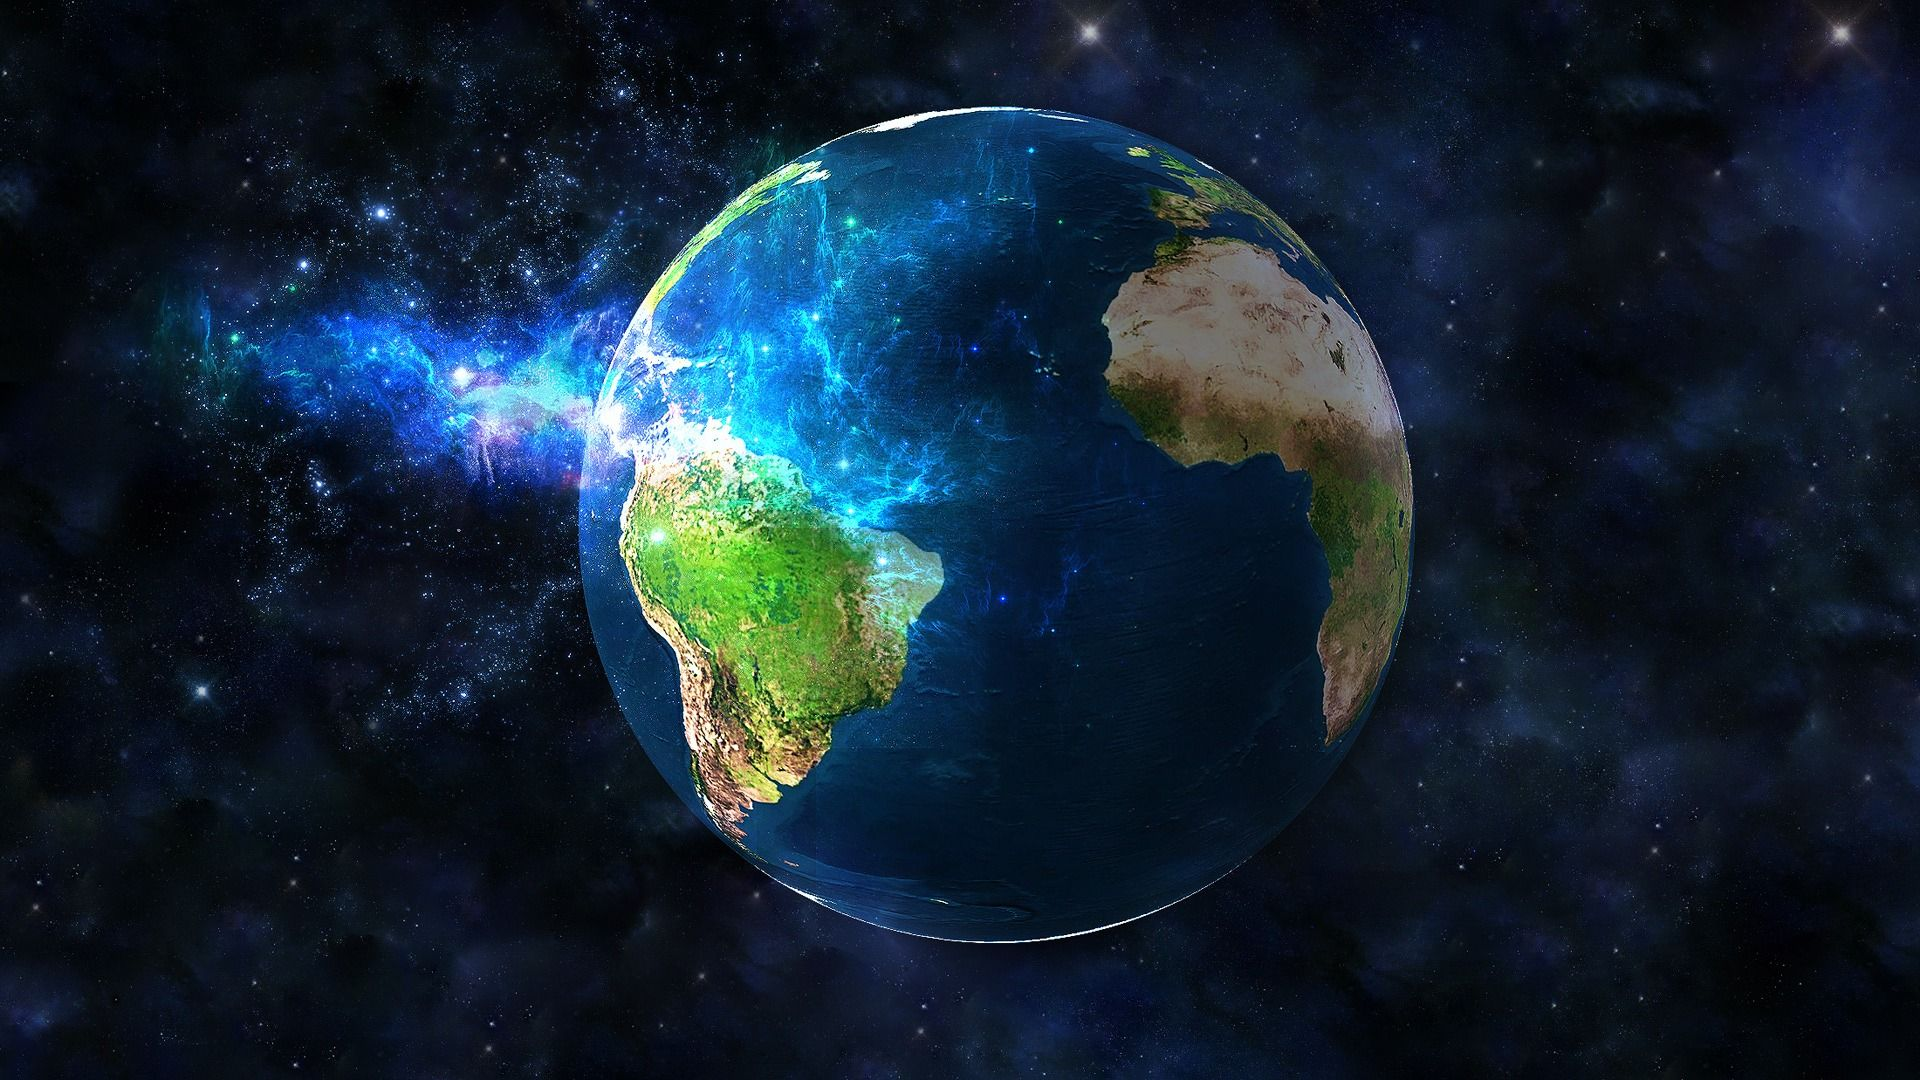 download the latest earth hd wallpaper from wallpapers111 com we search all over world